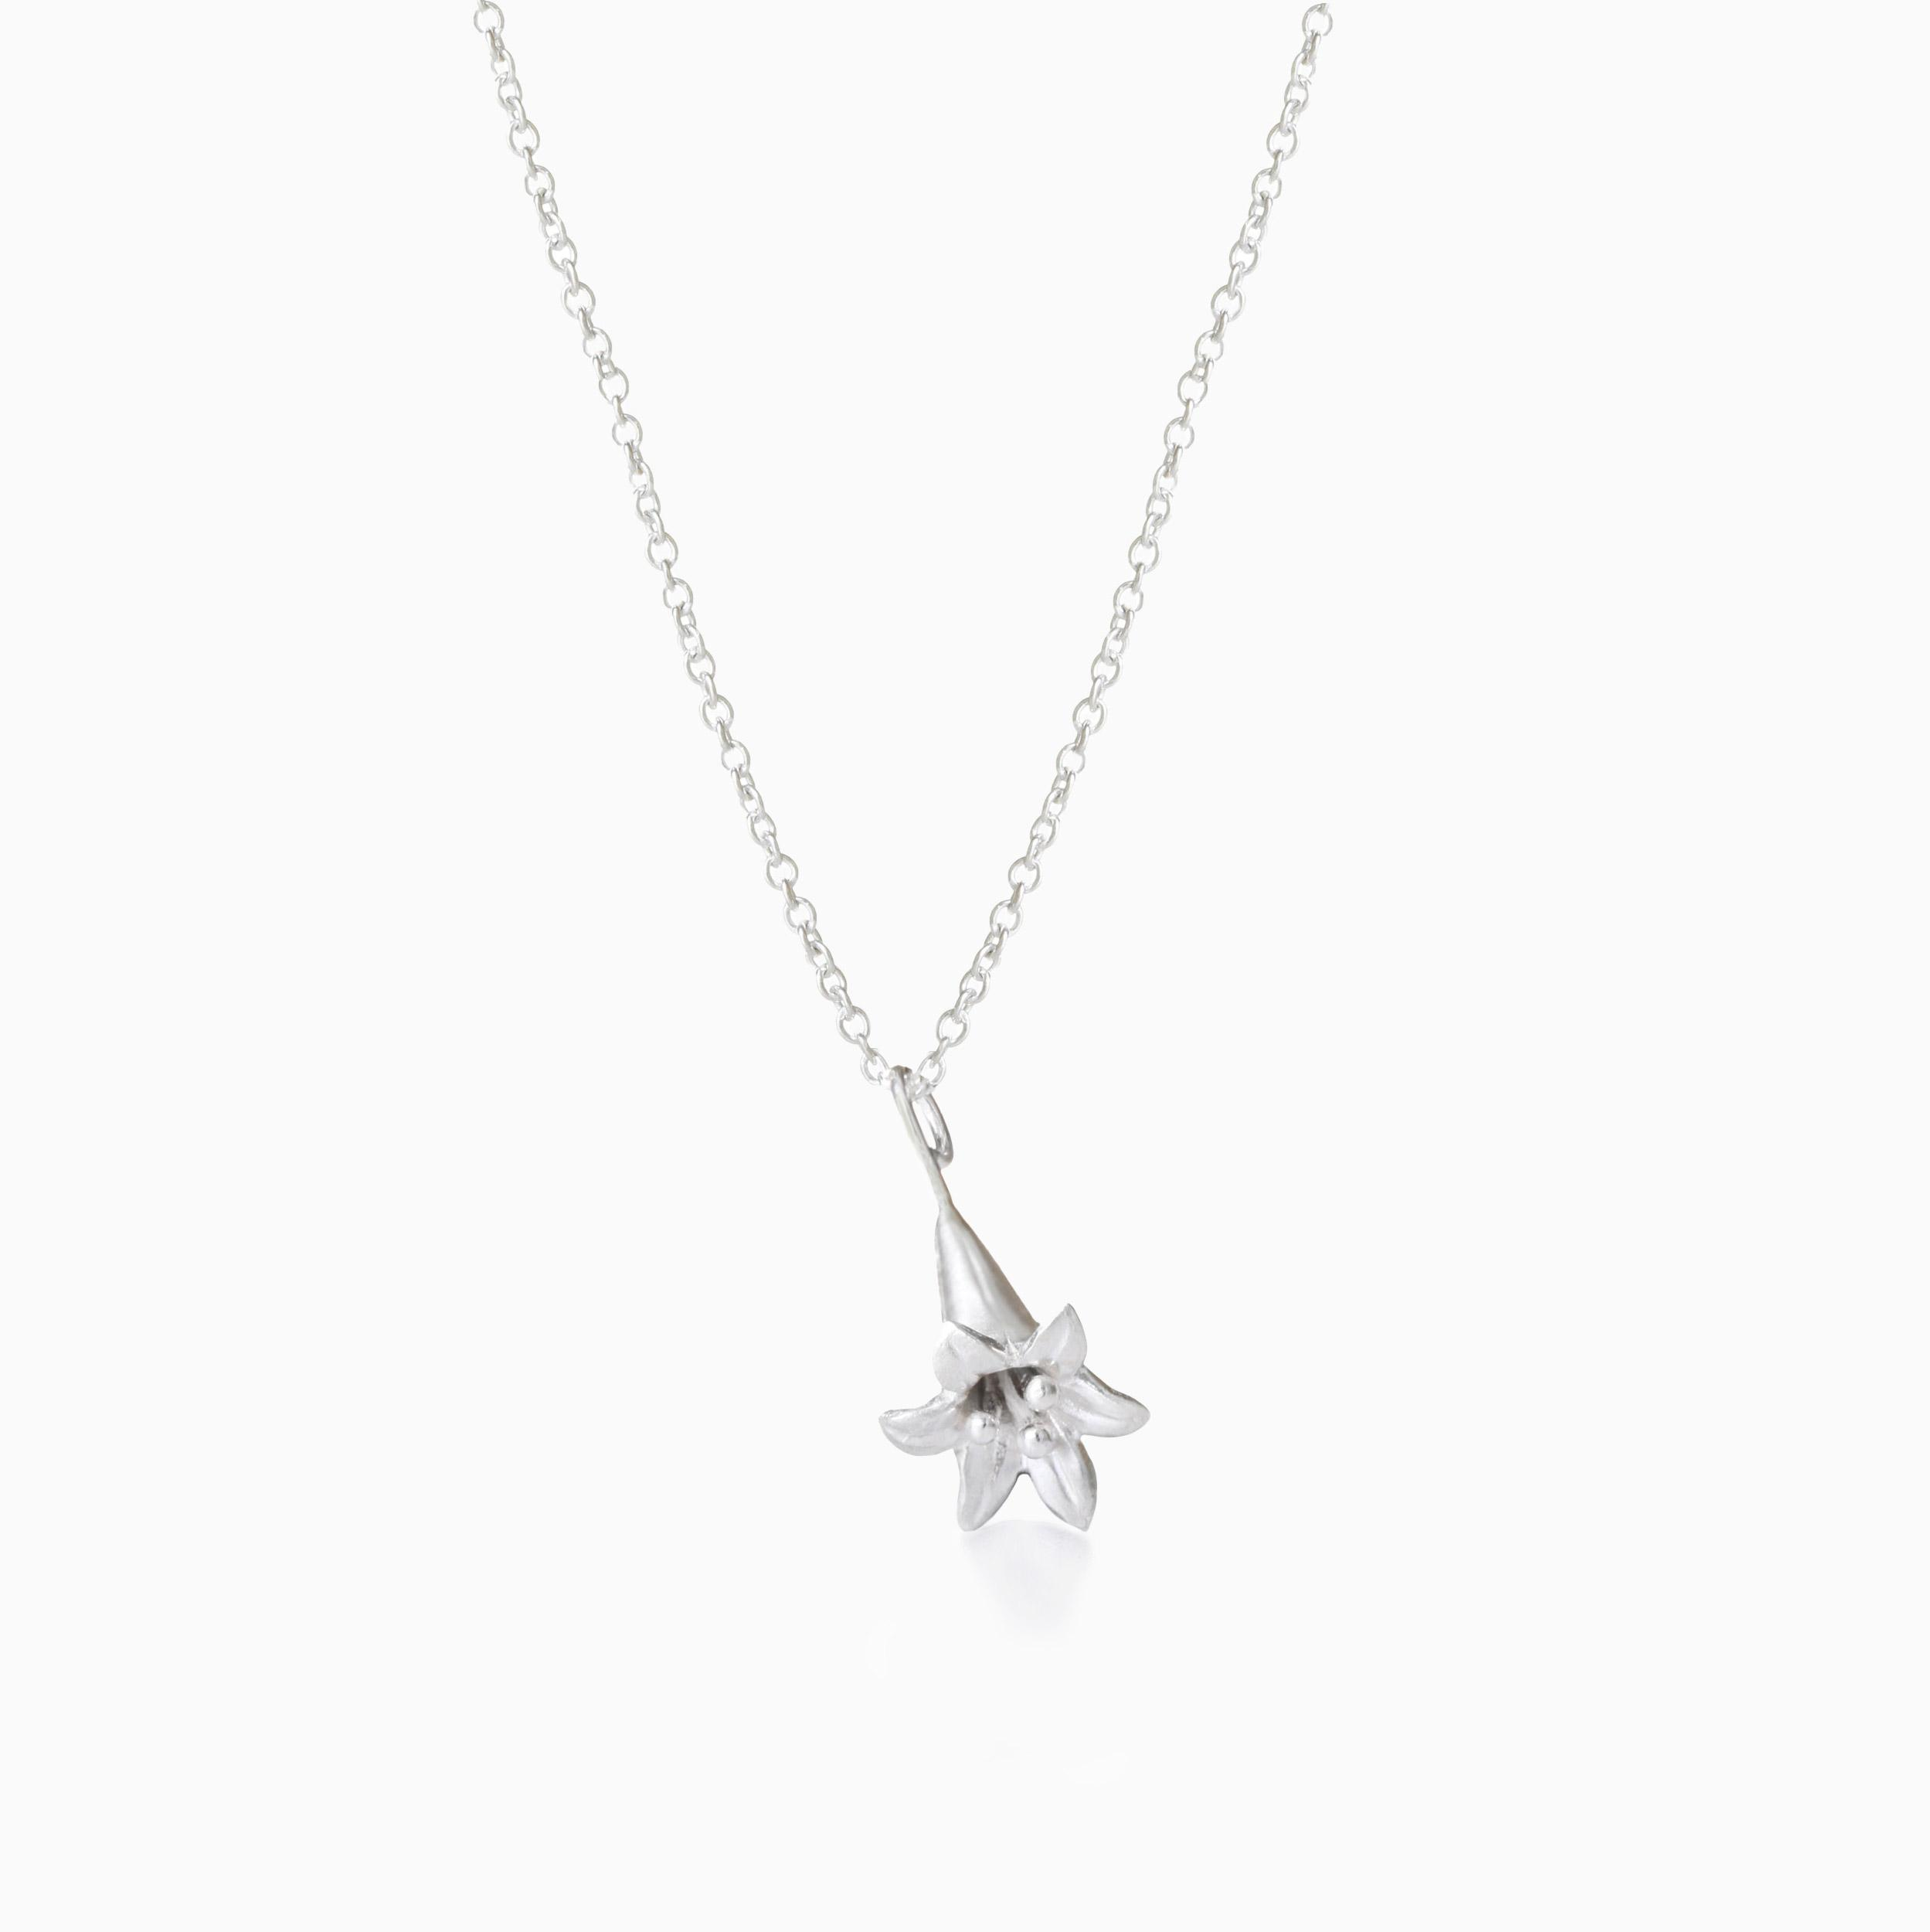 Lily Sterling Silver Necklace made by Winter in July